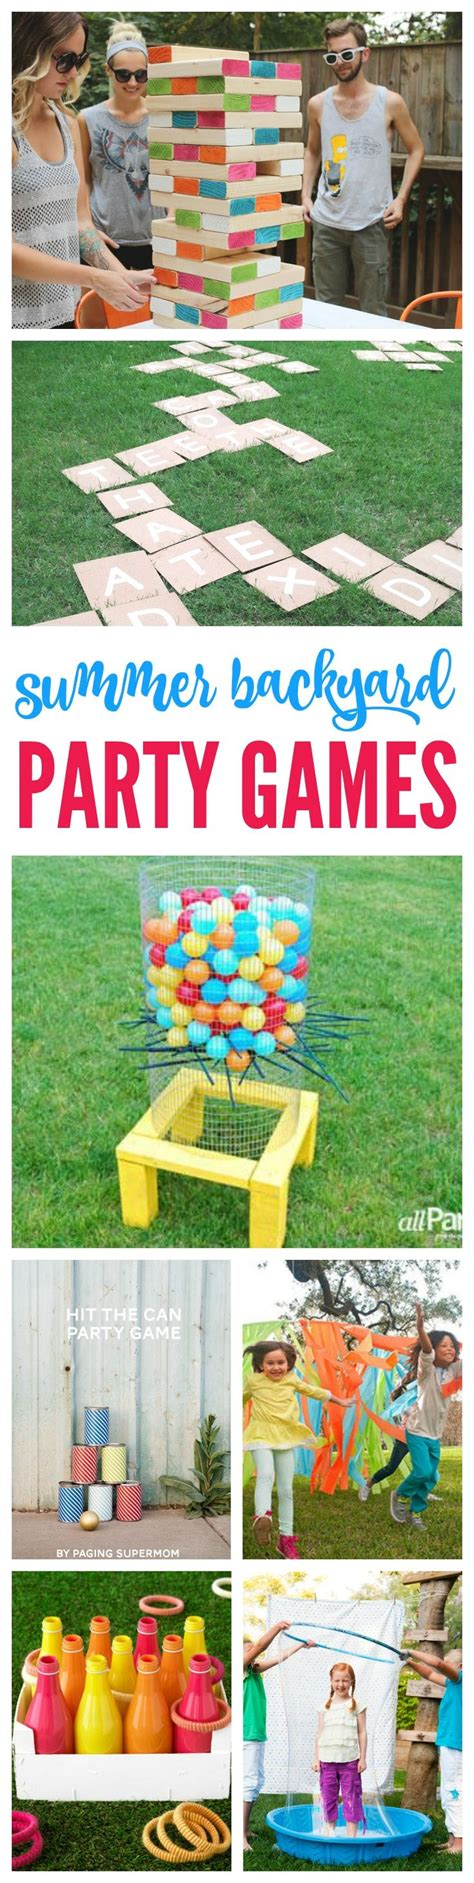 backyard party games best 25 summer party games ideas on pinterest outdoor